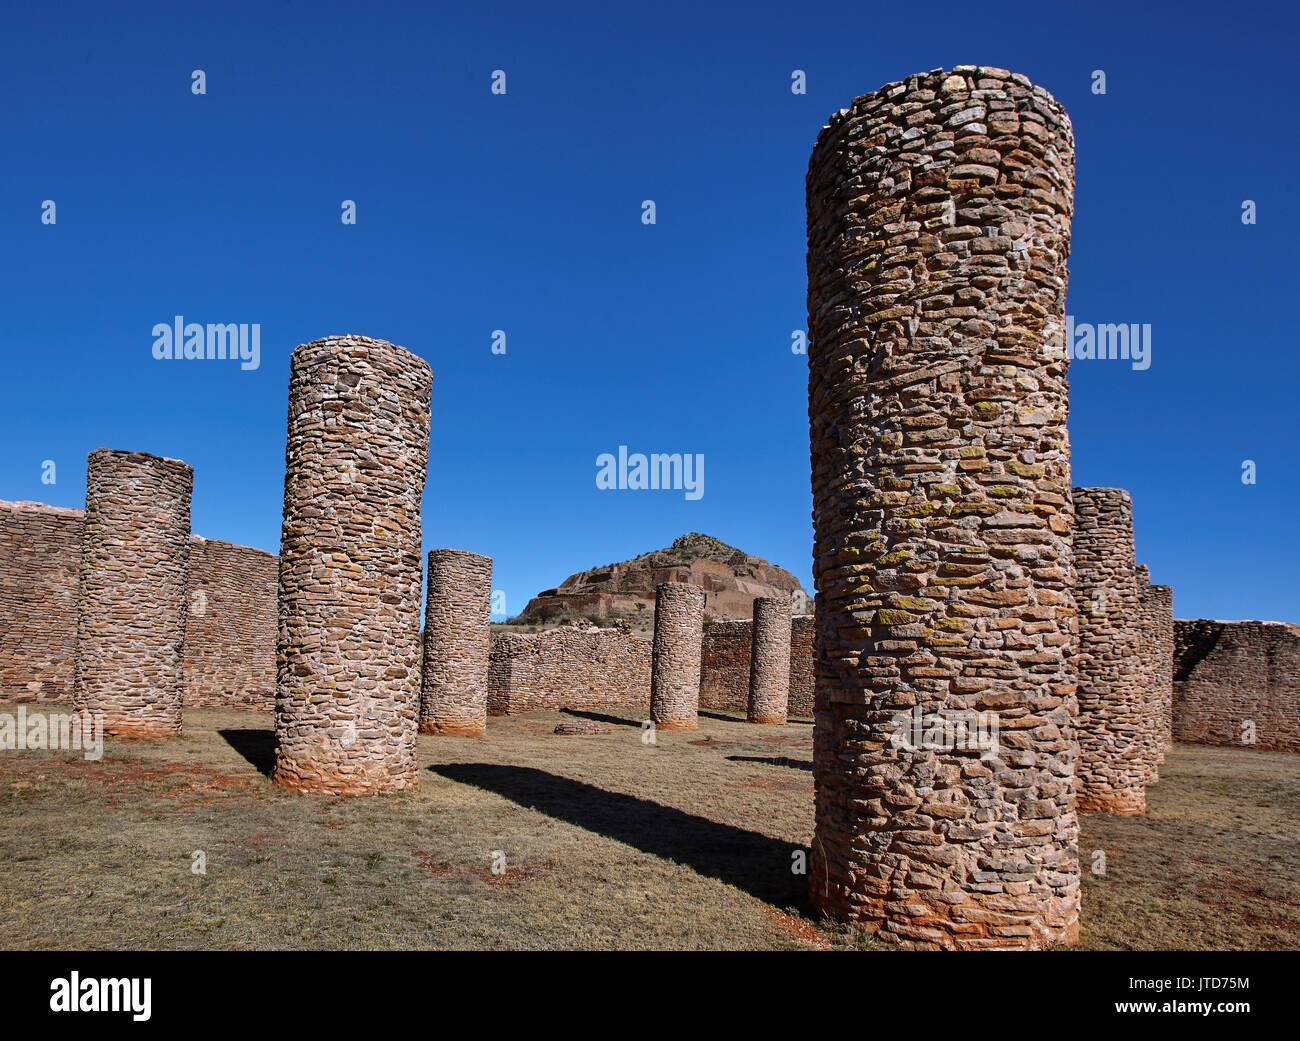 America; Mexico; Zacatecas; Malpaso valley;Pre hispanic; archaeological site La Quemada; Salón de las Columnas; Columns Hall. This 41 by 32 metre enclosure, probably reached a height of more than five metres before the fire that caused its destruction. In their interior eleven columns supported the roof. Until now its specific function is not known. Although works made in the 1950s indicate a ceremonial use possibly related to human sacrifice. - Stock Image